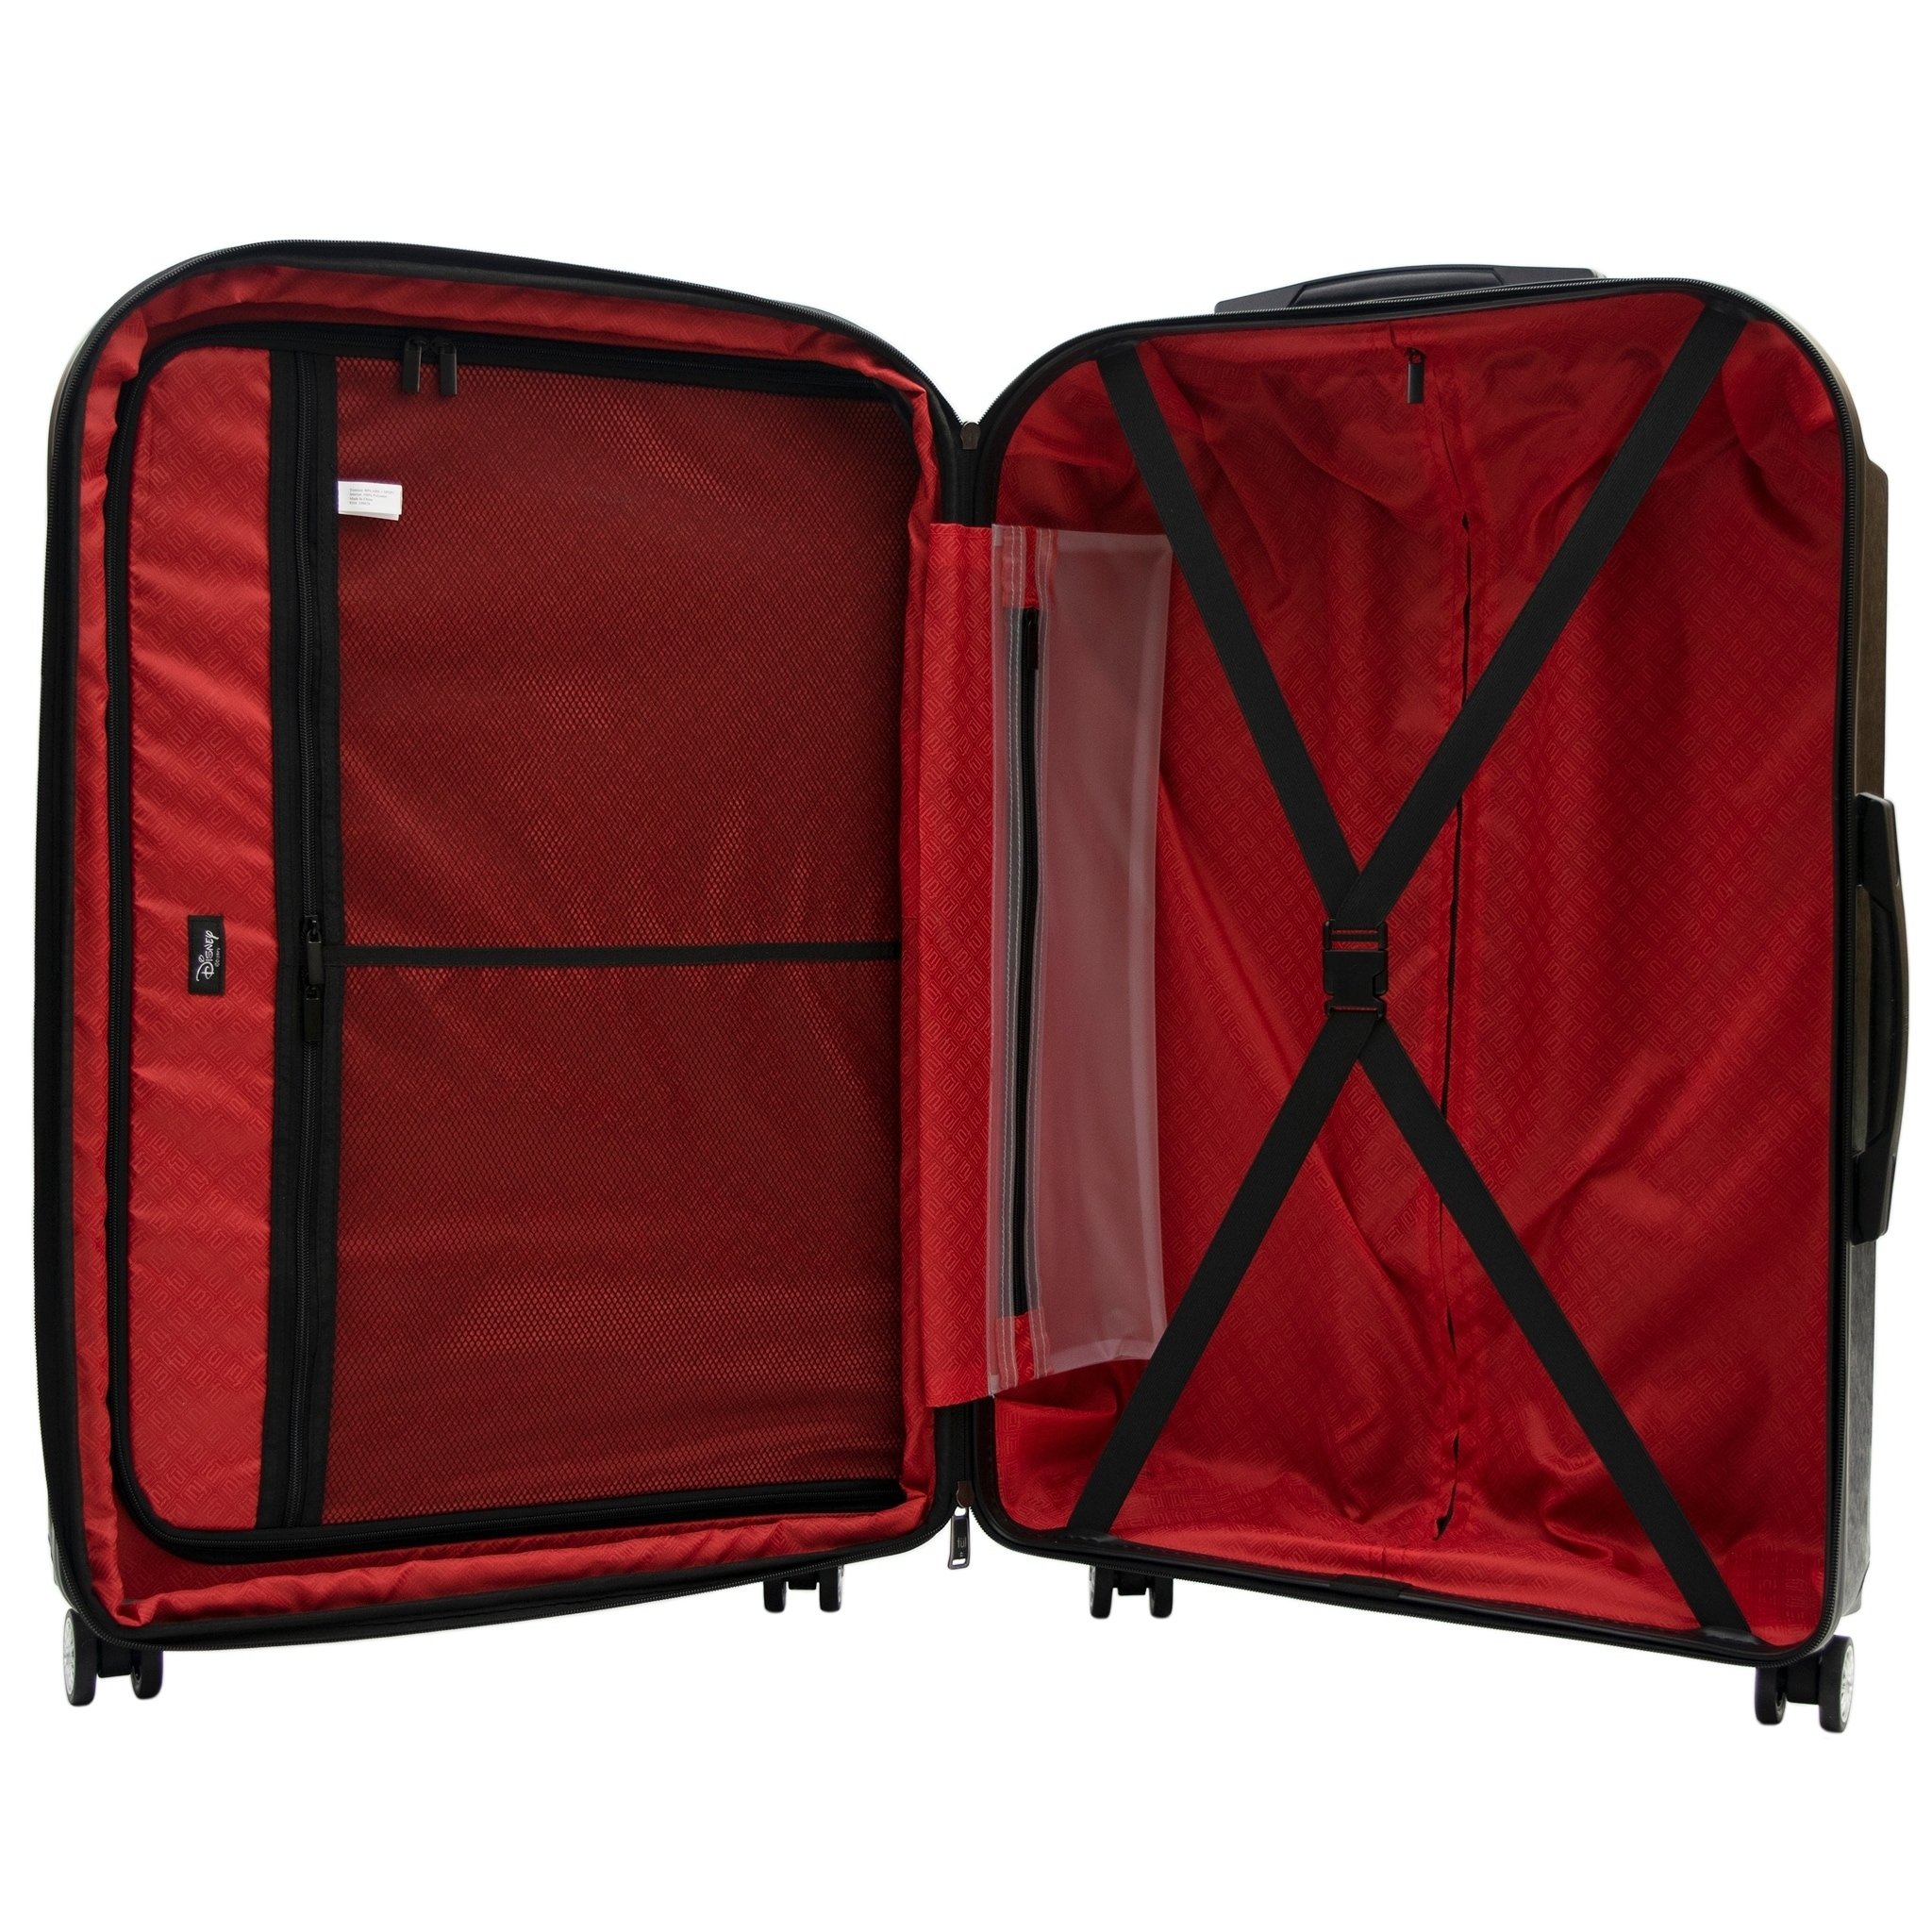 378e0a09f08 Shop Ful Disney Textured Mickey Mouse 3 Piece Luggage Set